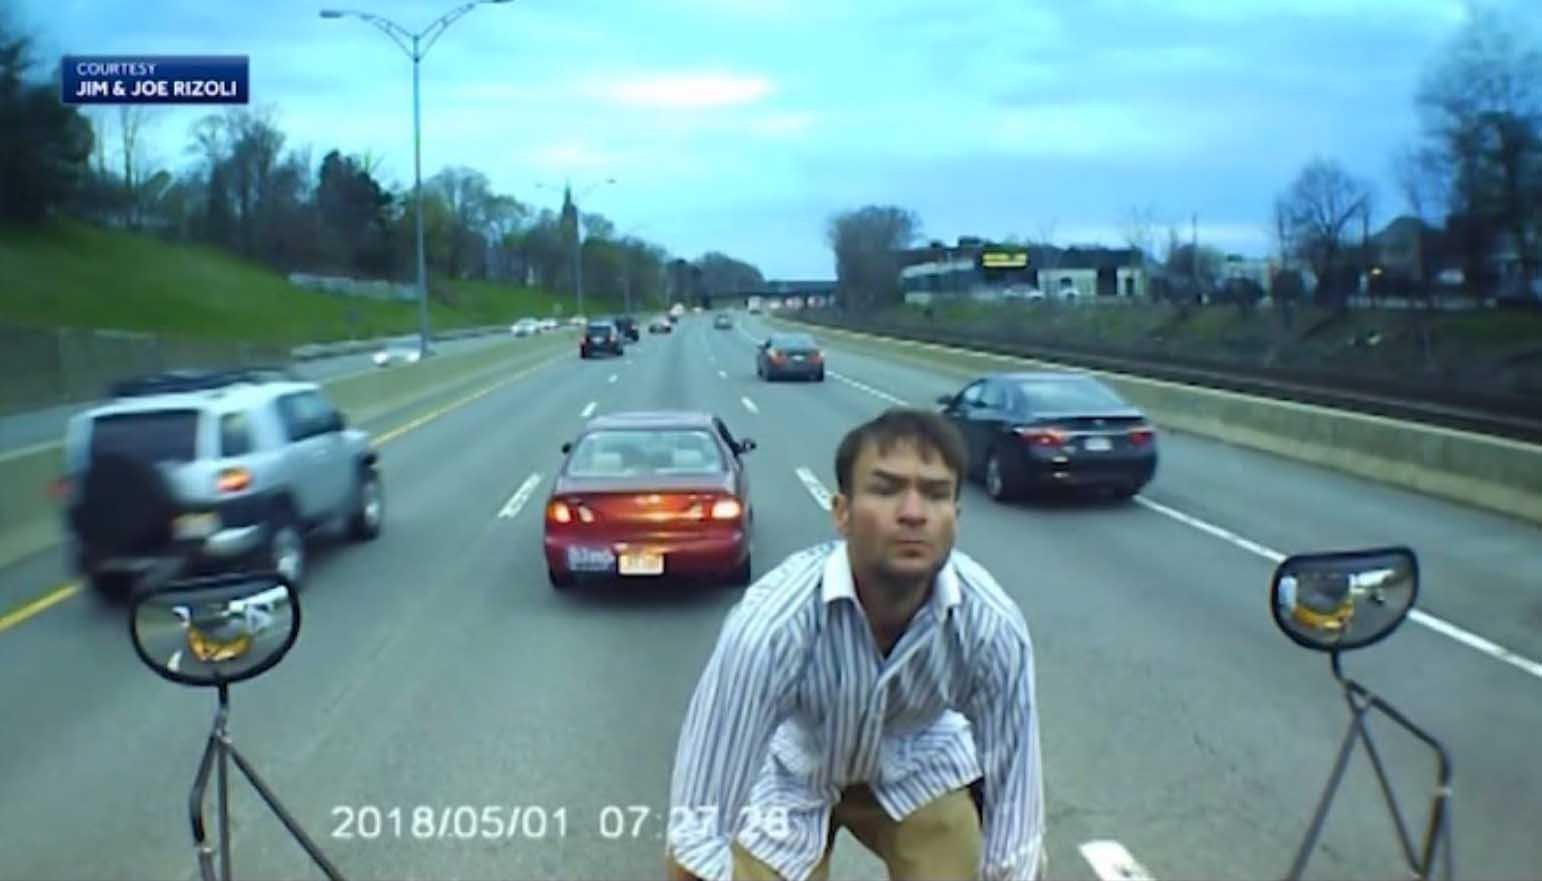 Video captures man jumping on school bus in middle of turnpike